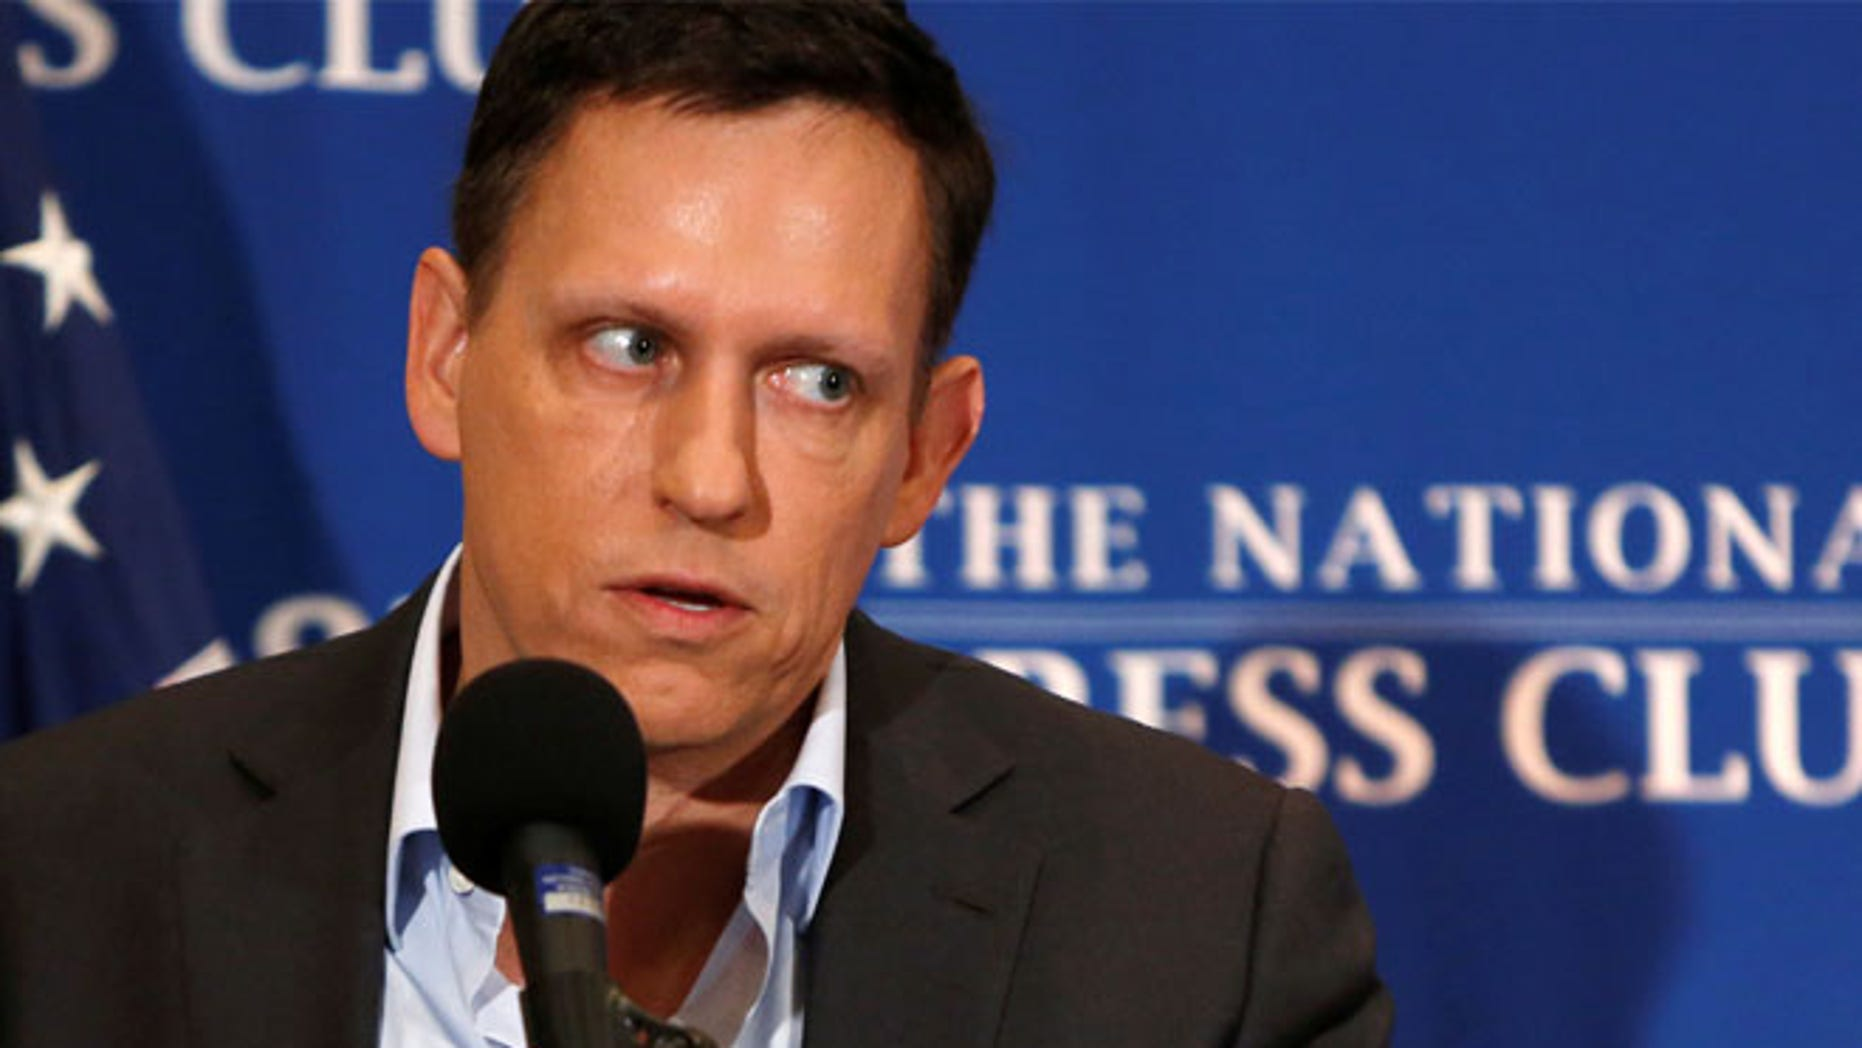 Friends say Peter Thiel is private and, considering that Trump only won 30 percent of the vote in the state, say the chances of a campaign are slim.